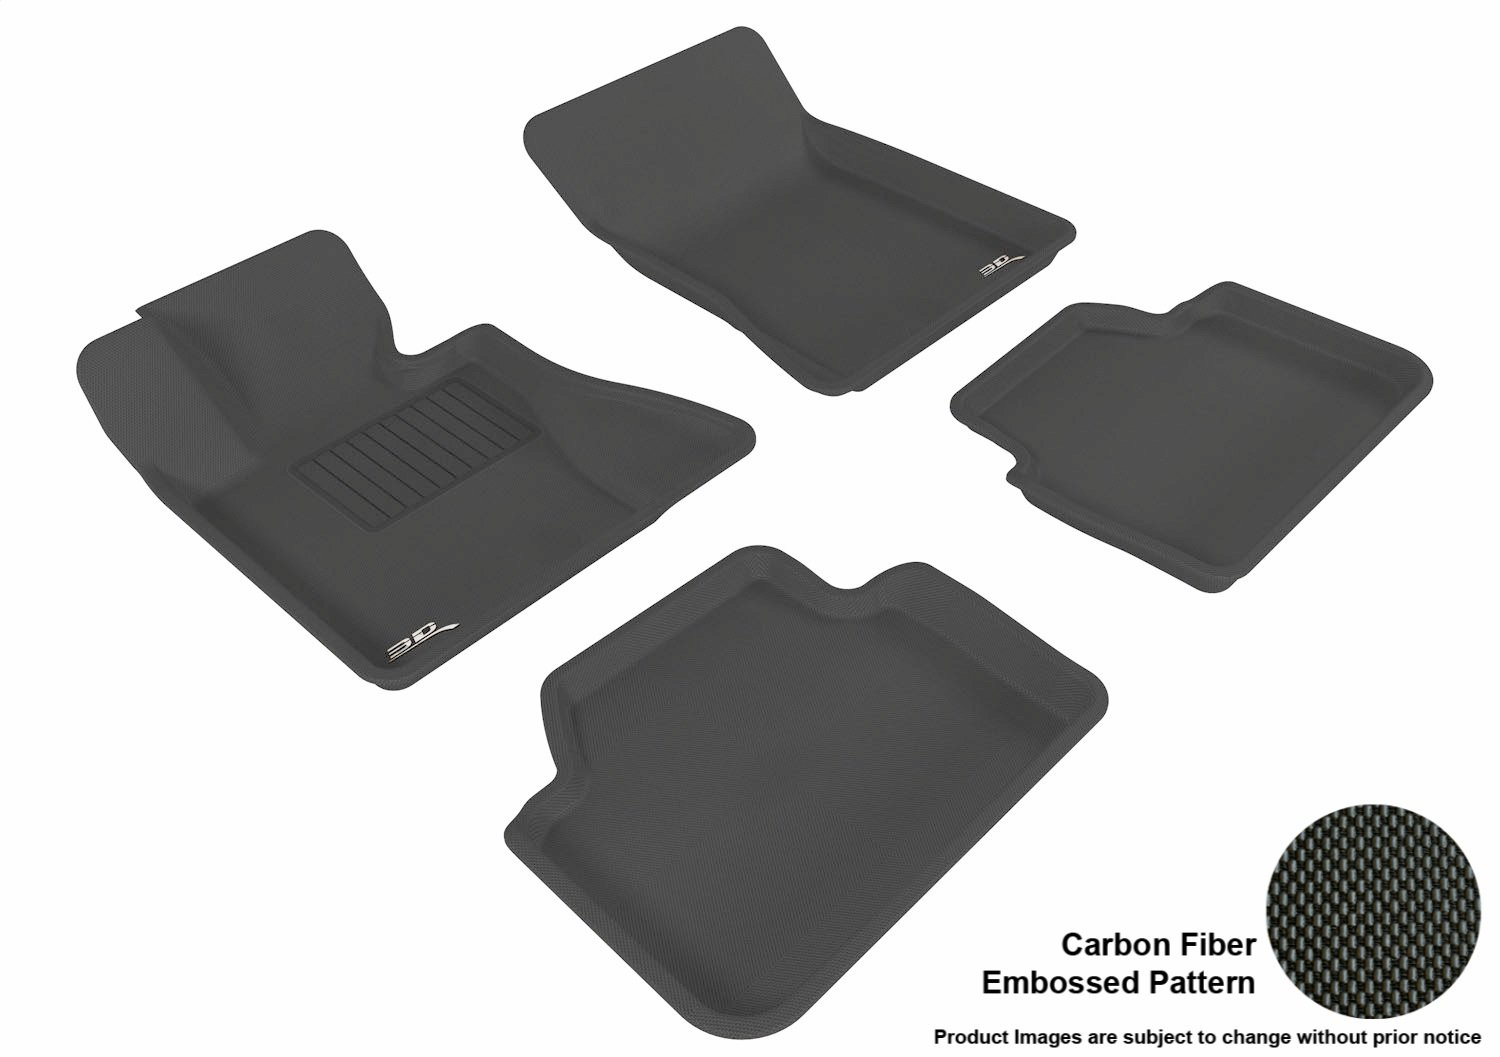 Kagu Rubber 3D MAXpider Front Row Custom Fit All-Weather Floor Mat for Select BMW X3 Gray E83 Models L1BM01211501